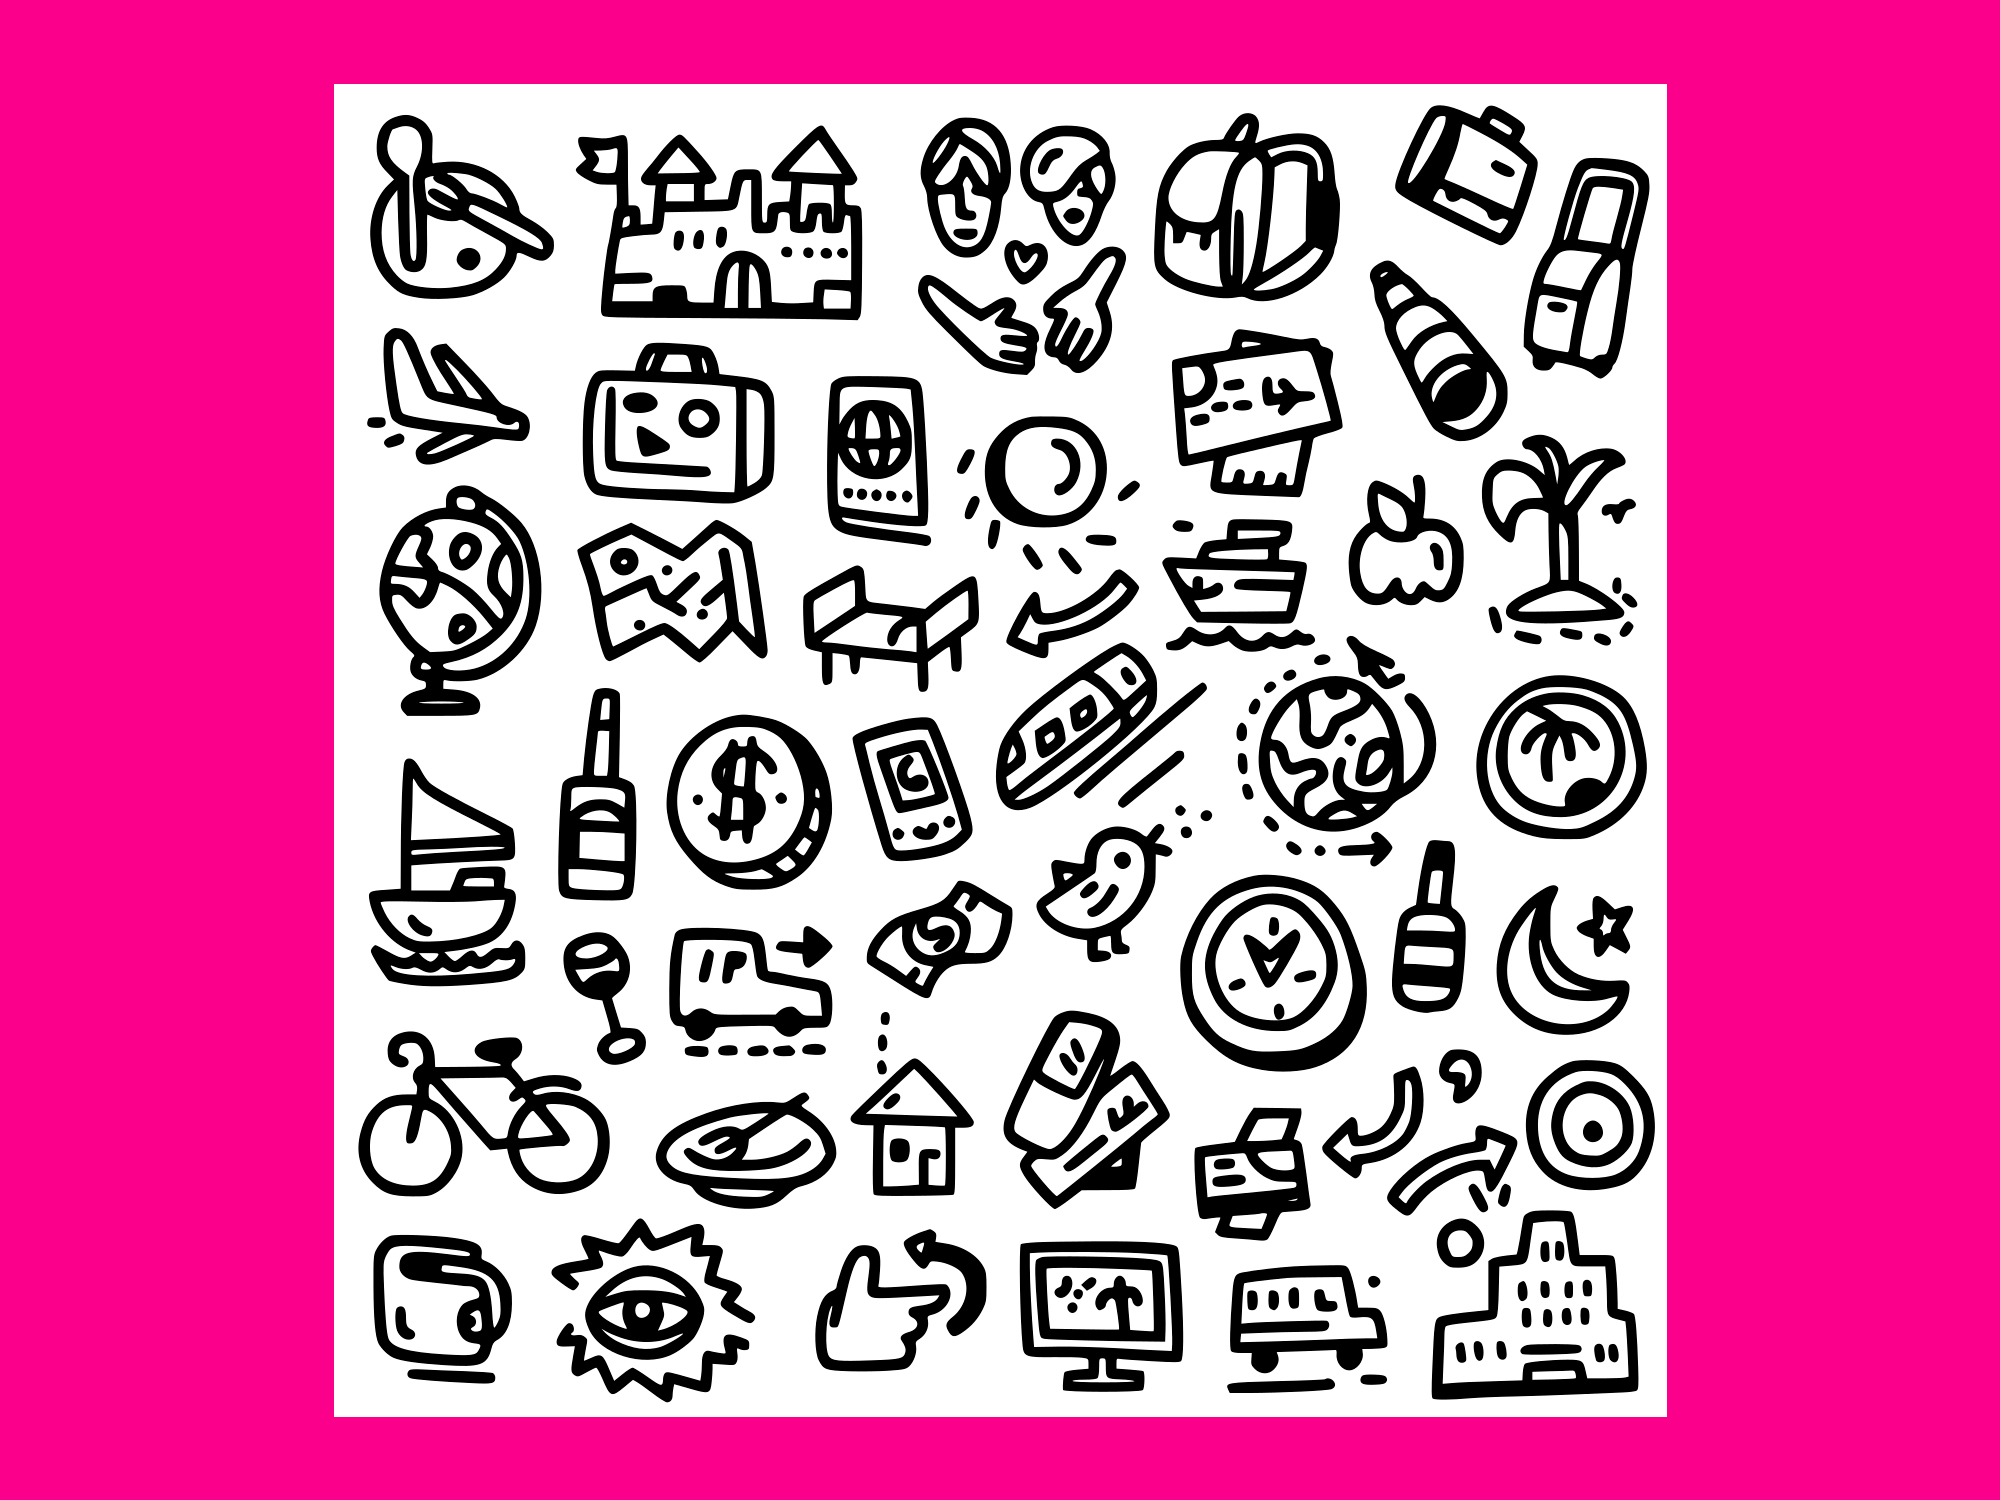 Download Free Travel Doodles 3 Graphic By Anrasoft Creative Fabrica for Cricut Explore, Silhouette and other cutting machines.